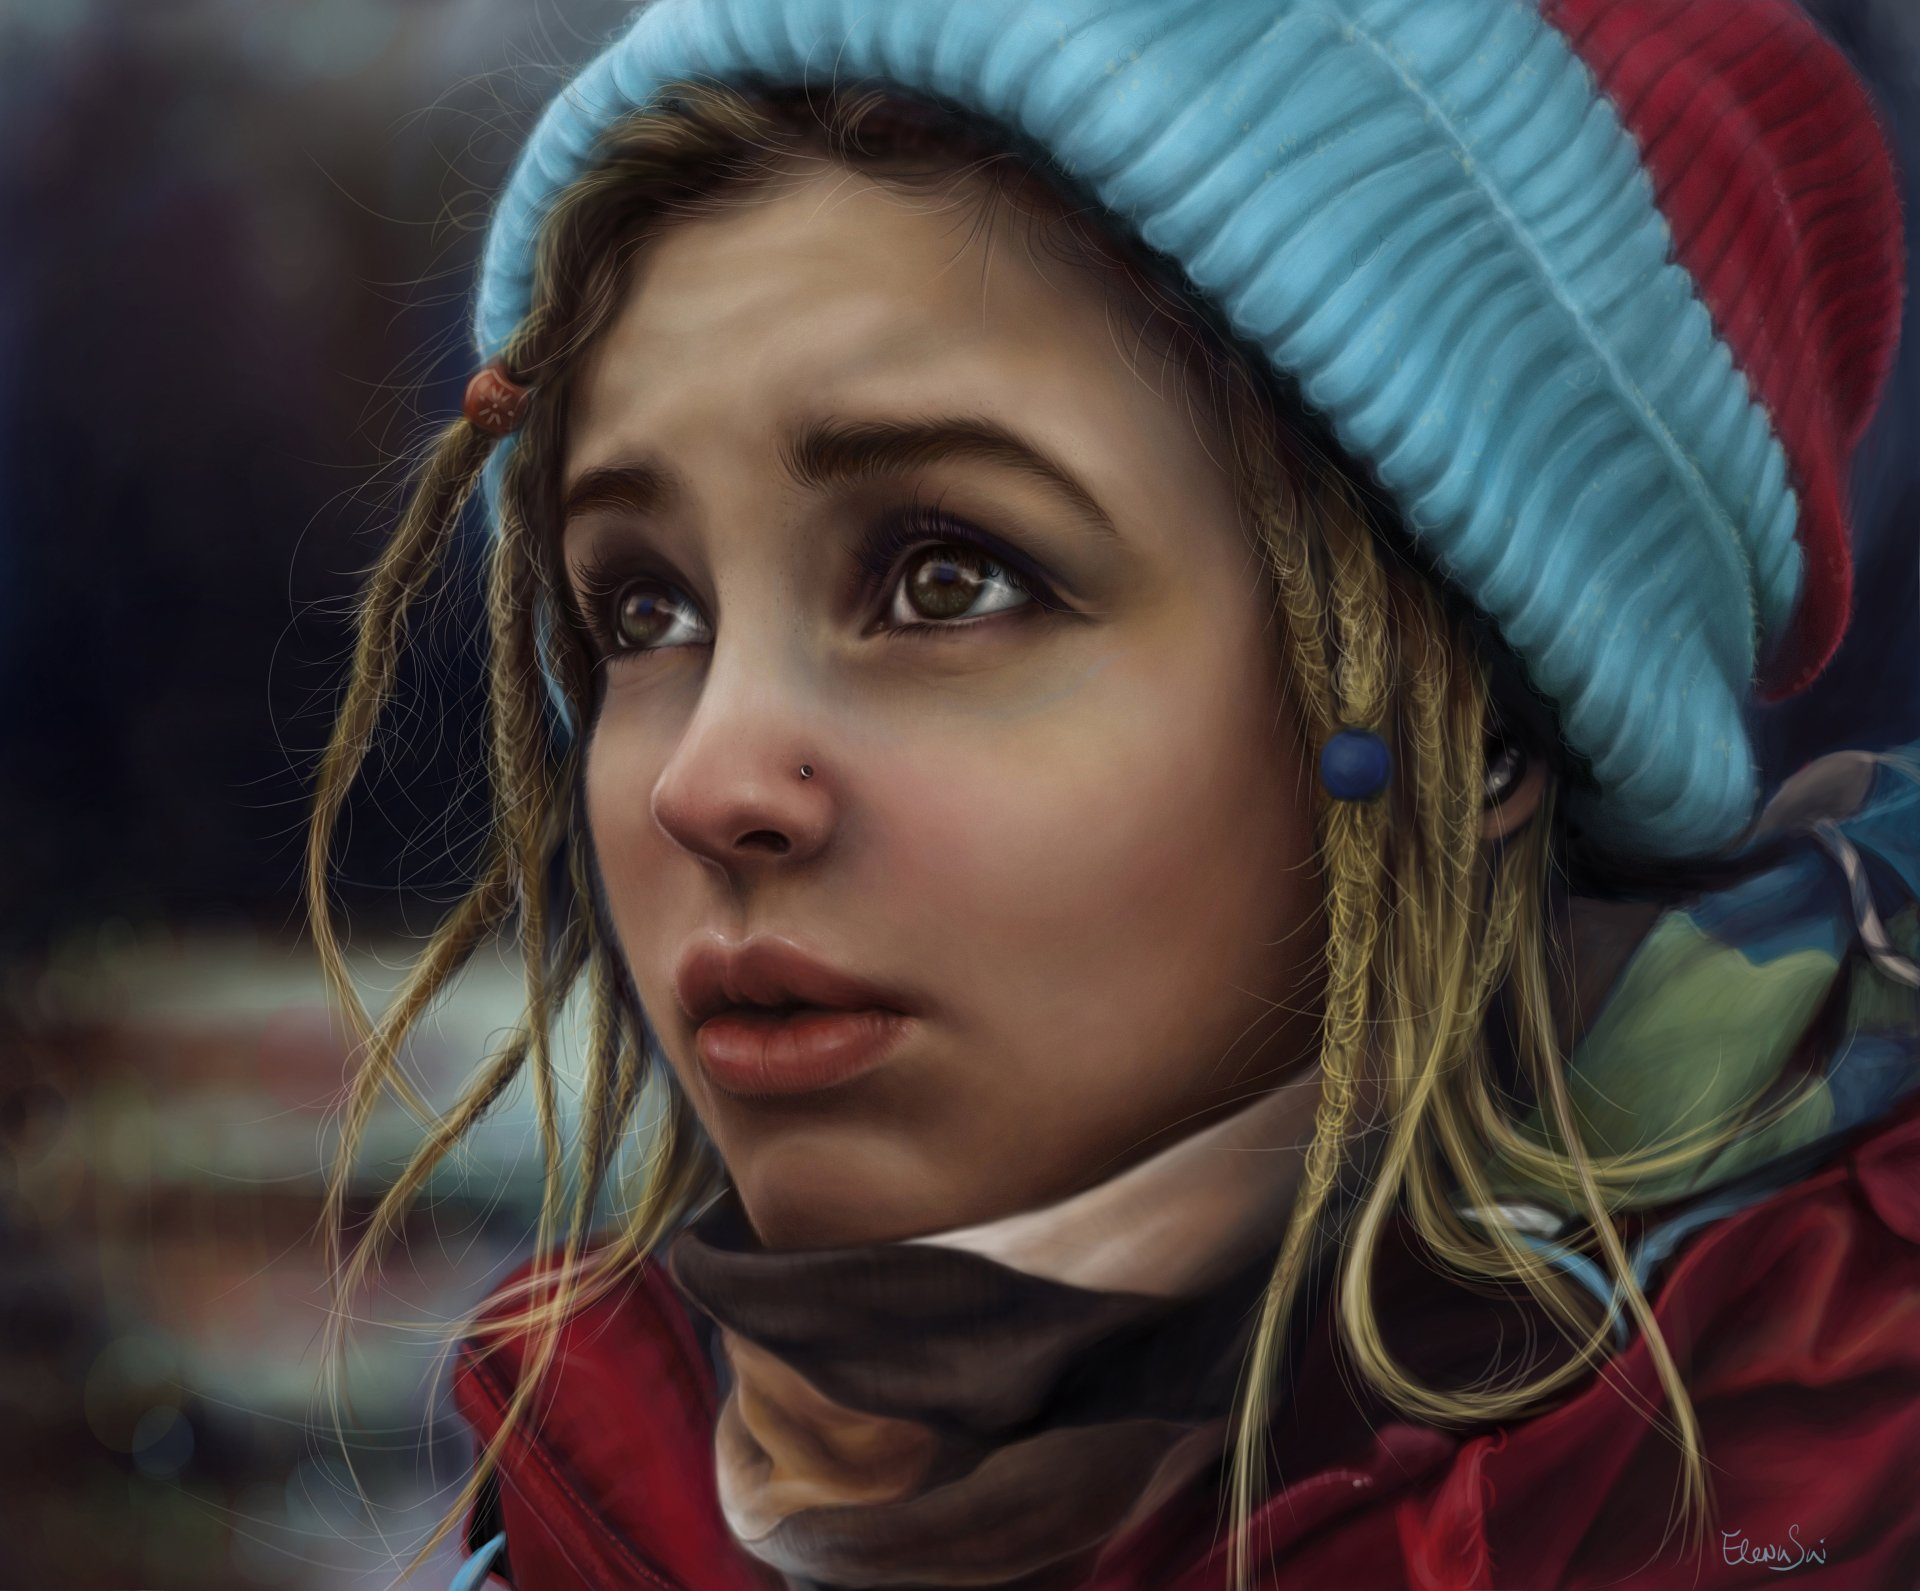 Artistic - Painting  Artistic Girl Coat Hat Blonde Wallpaper